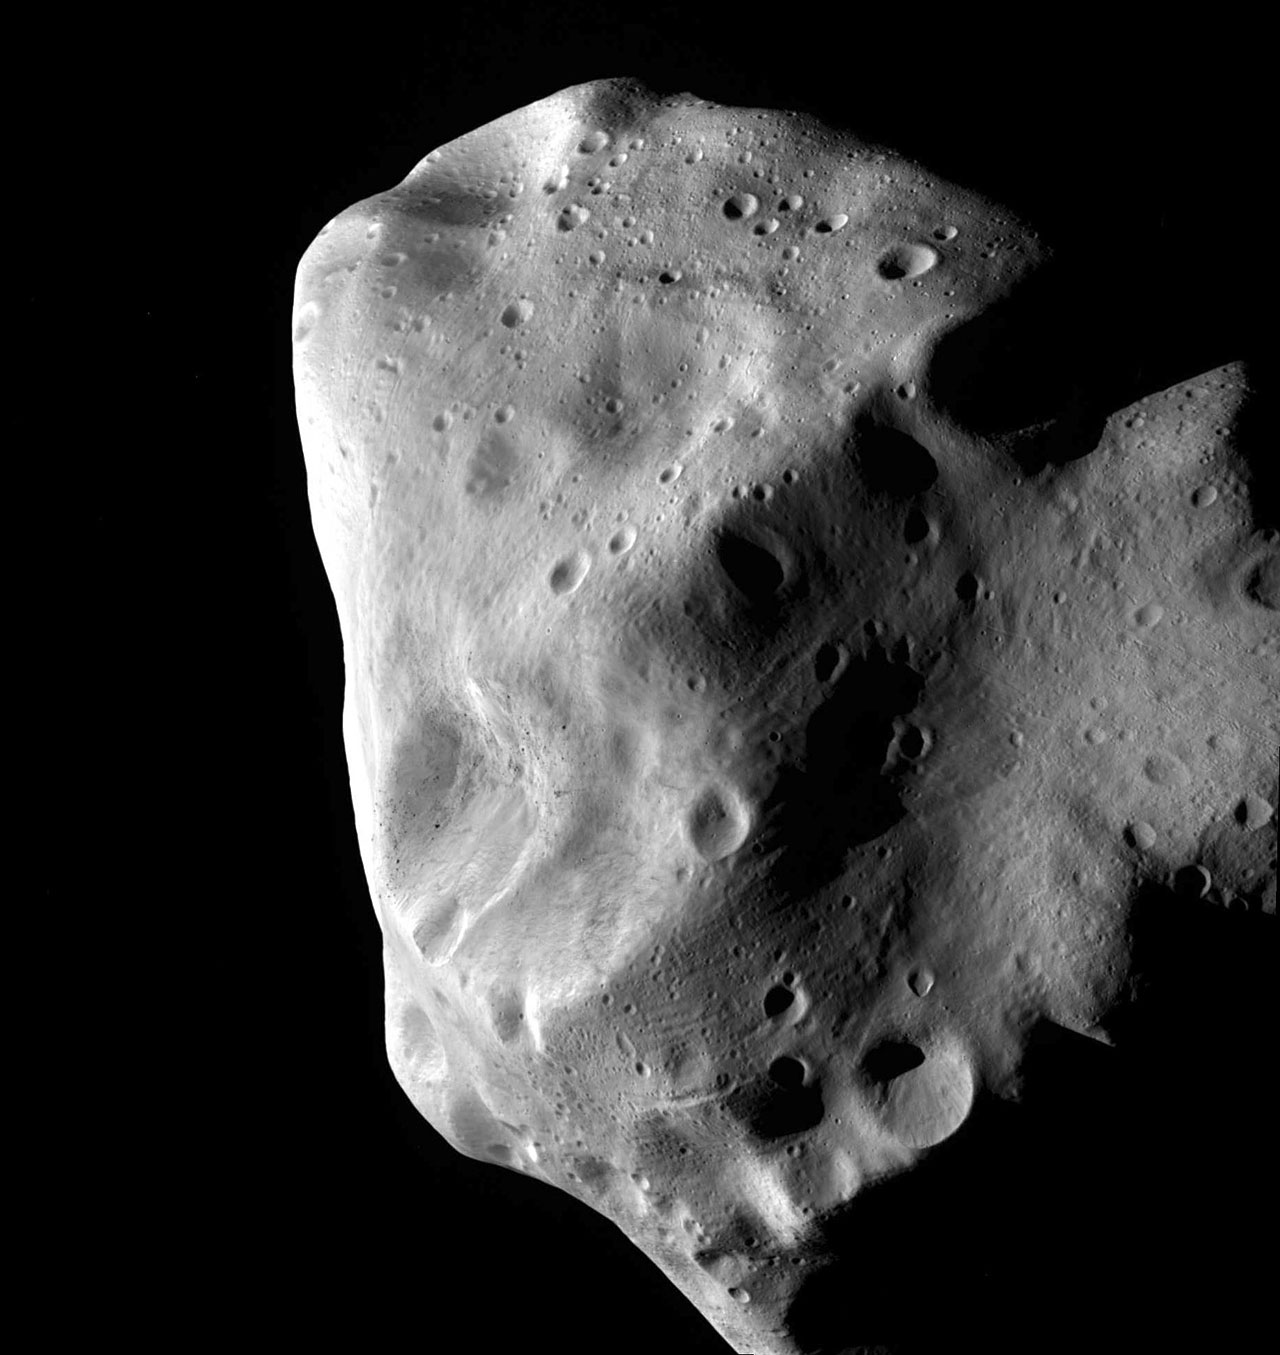 Battered Asteroid Lutetia a Rare Relic of Earth's Birth